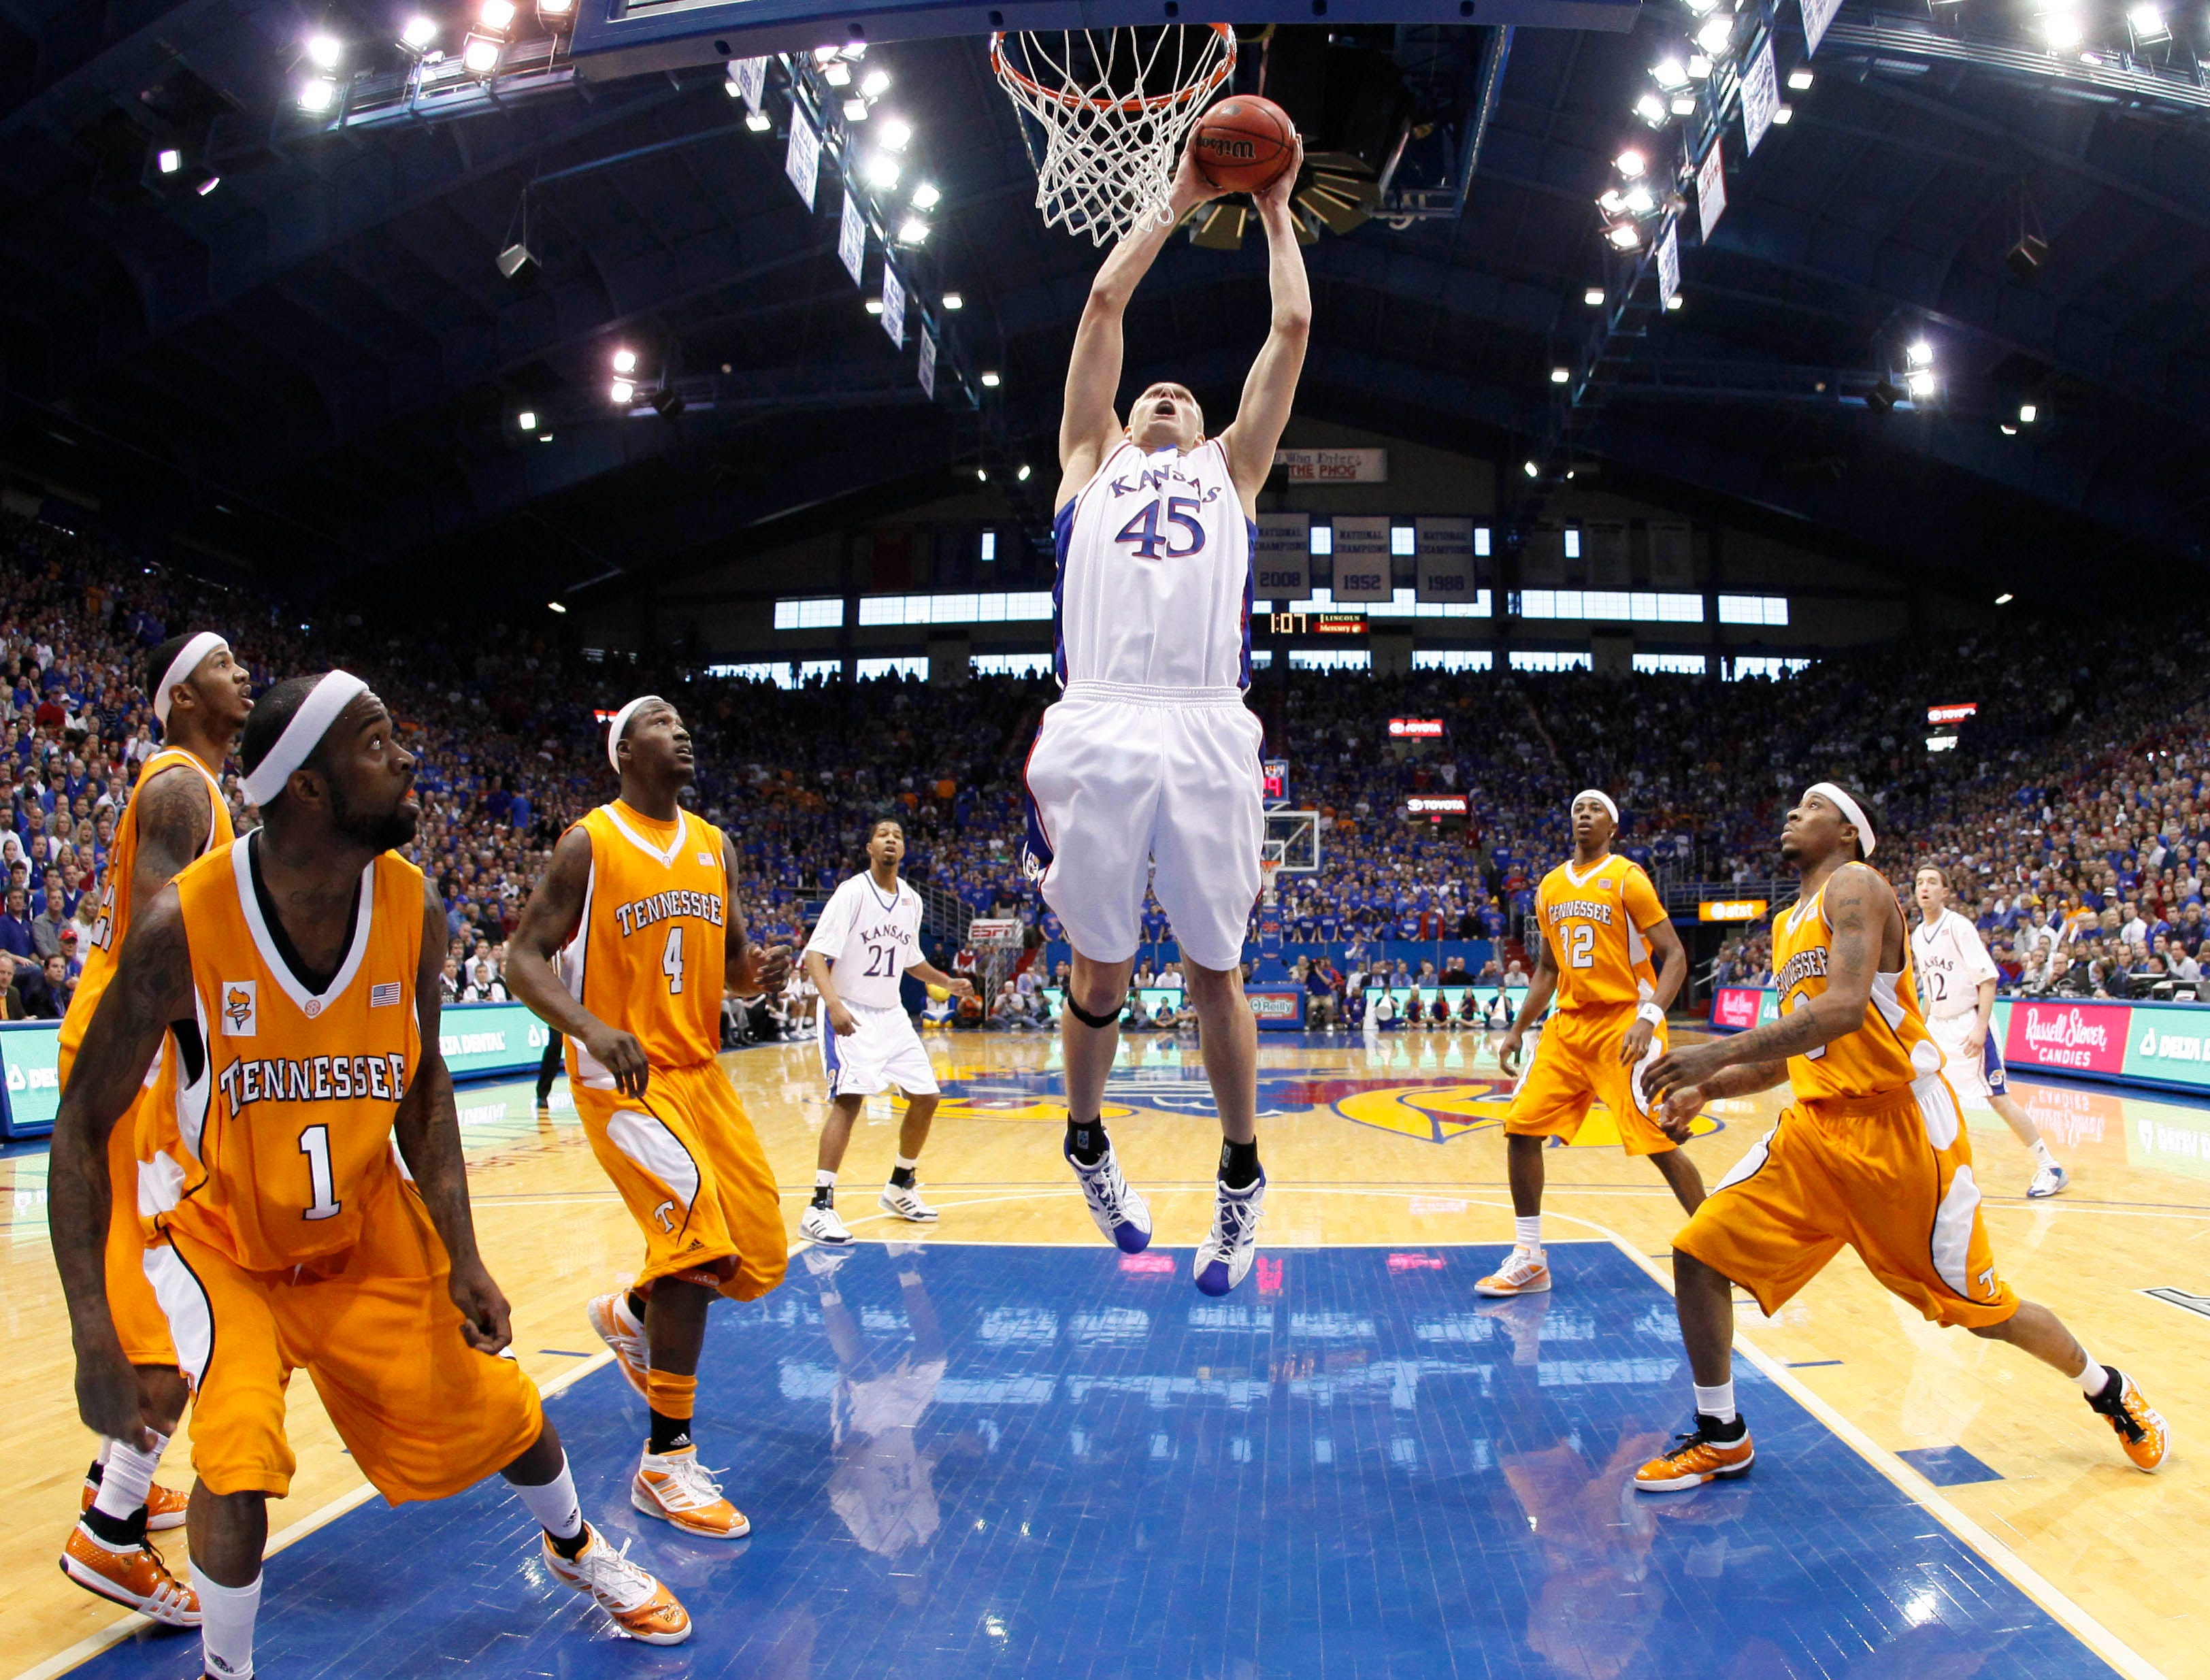 Kansas' Cole Aldrich (45) gets past a group of Tennessee defenders to put up a shot during the first half of an NCAA college men's basketball game Saturday, Jan. 3, 2009 in Lawrence, Kan.